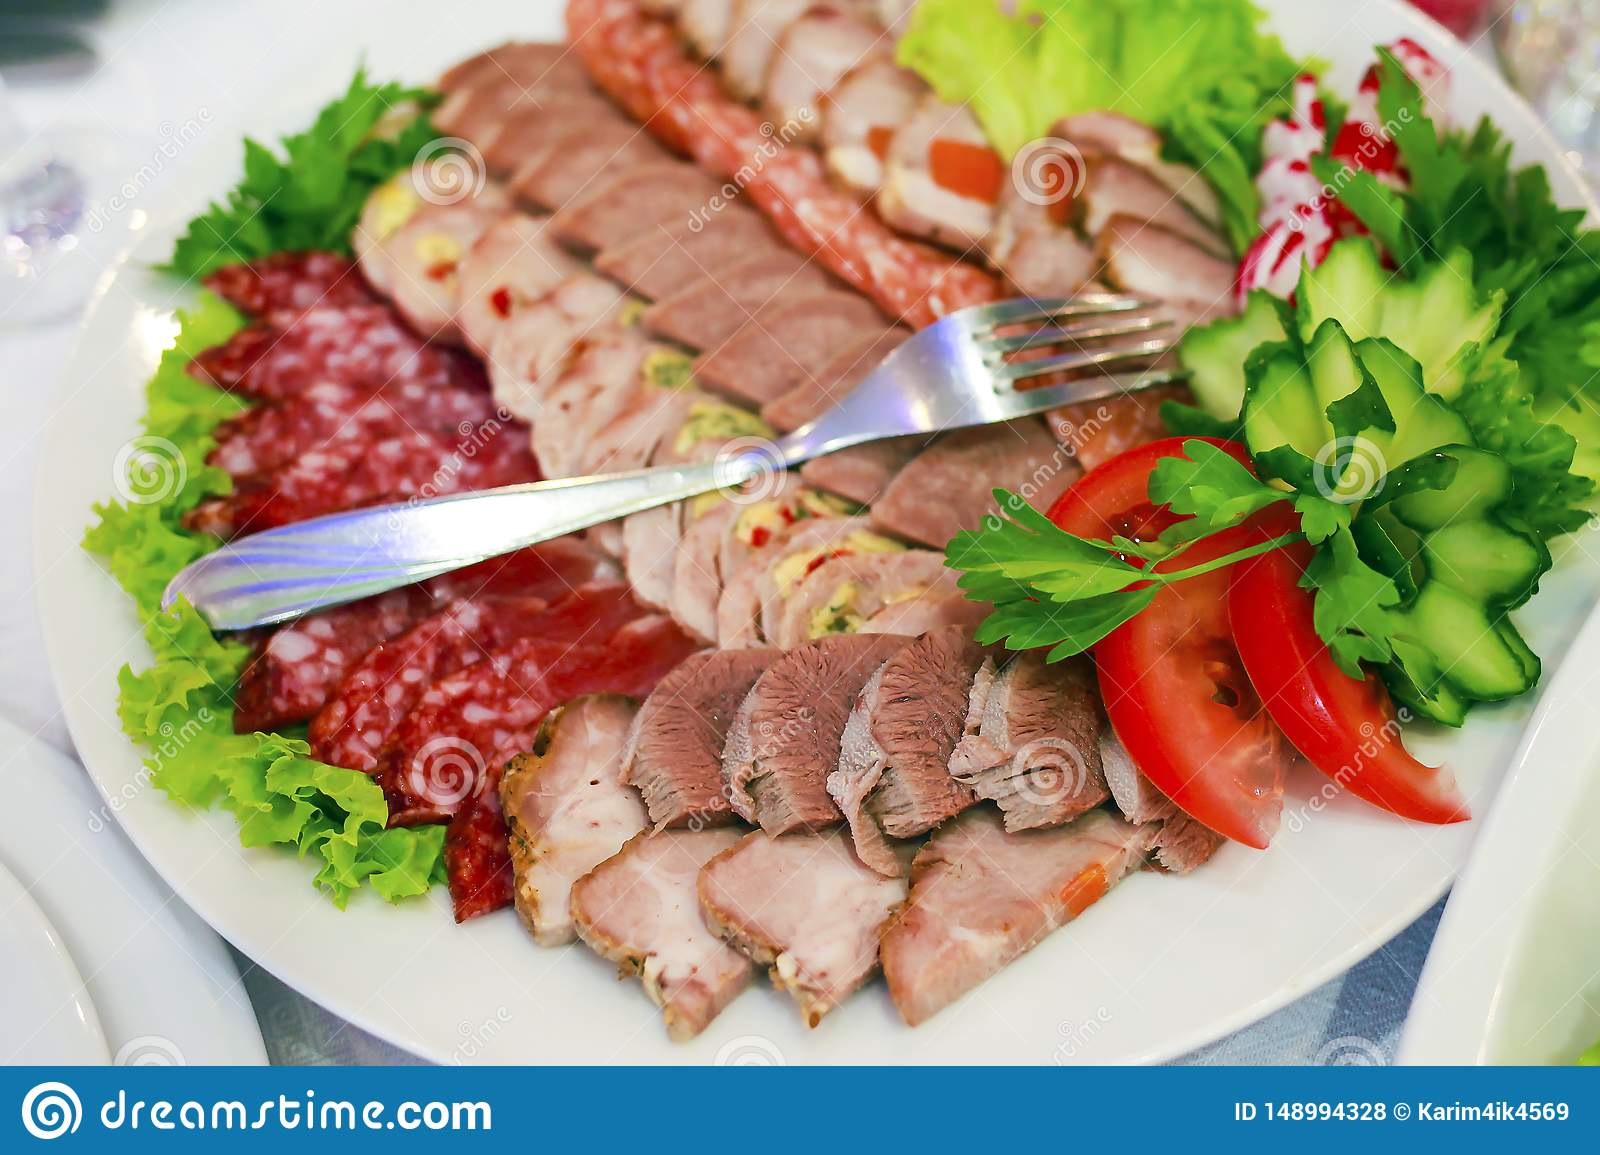 A plate of ham, bacon, salami and sausages. Meat platter